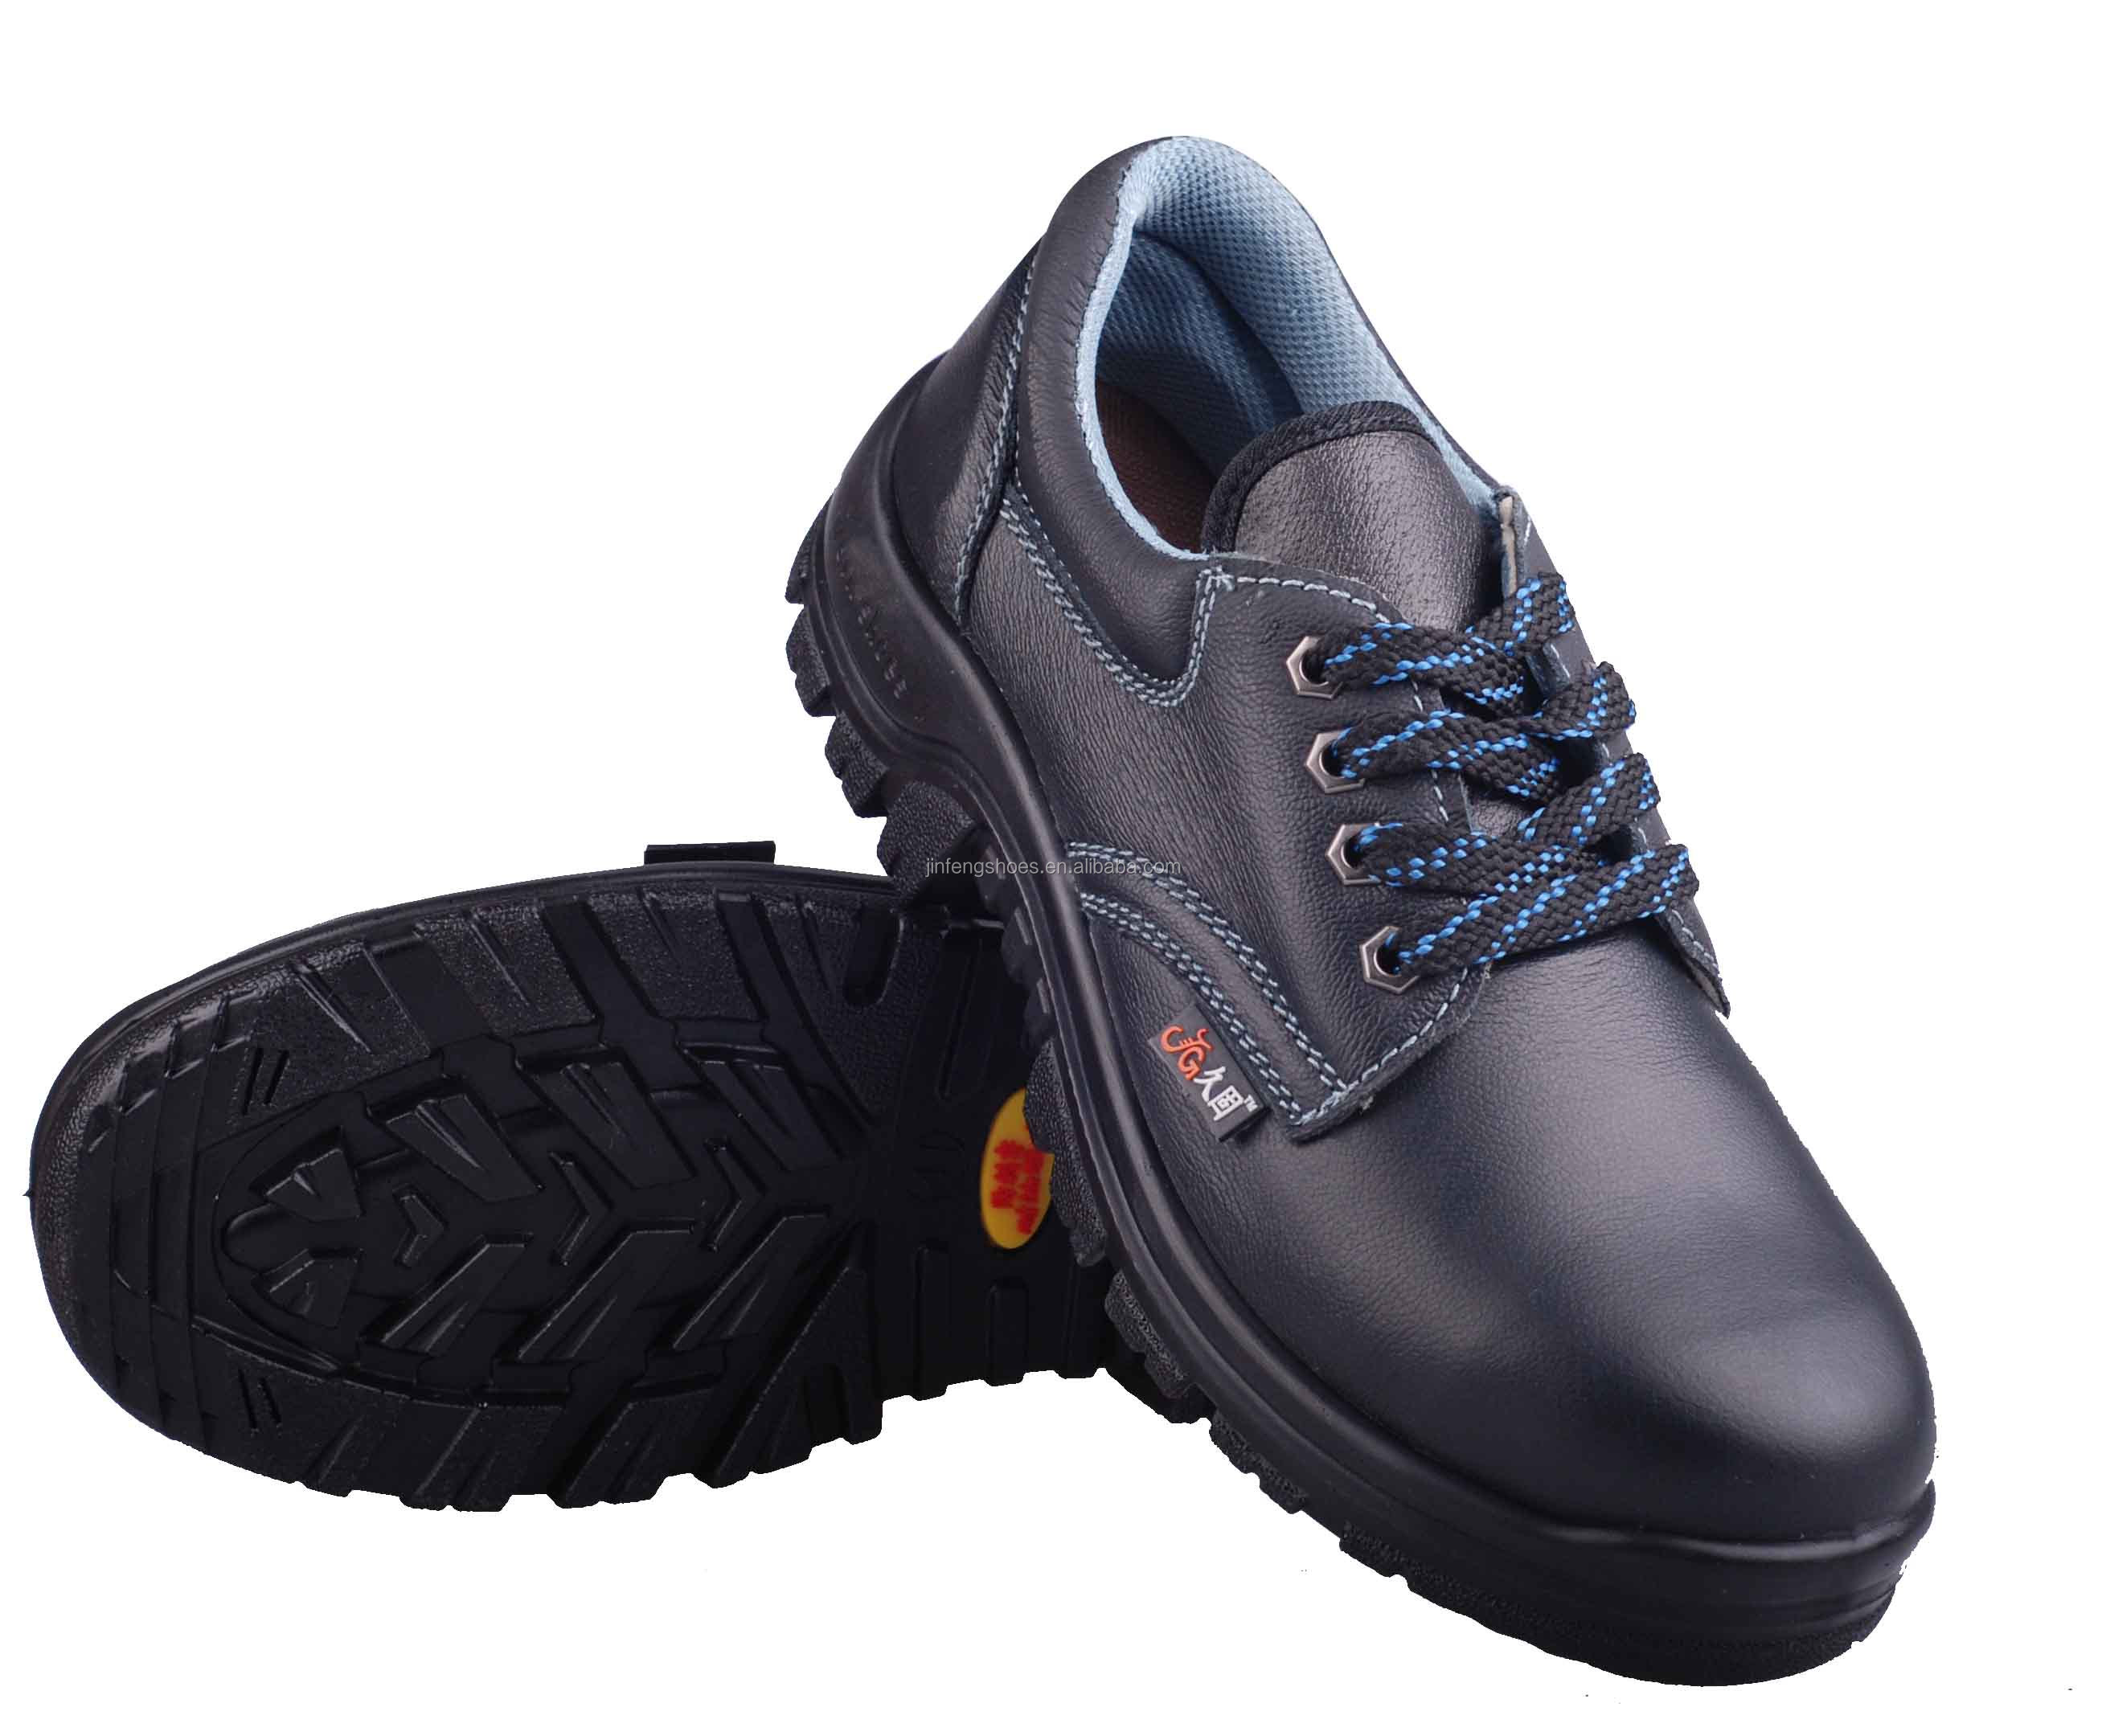 Low Cut Oil And Slip Resistant Safety Shoes Liberty Industrial ...